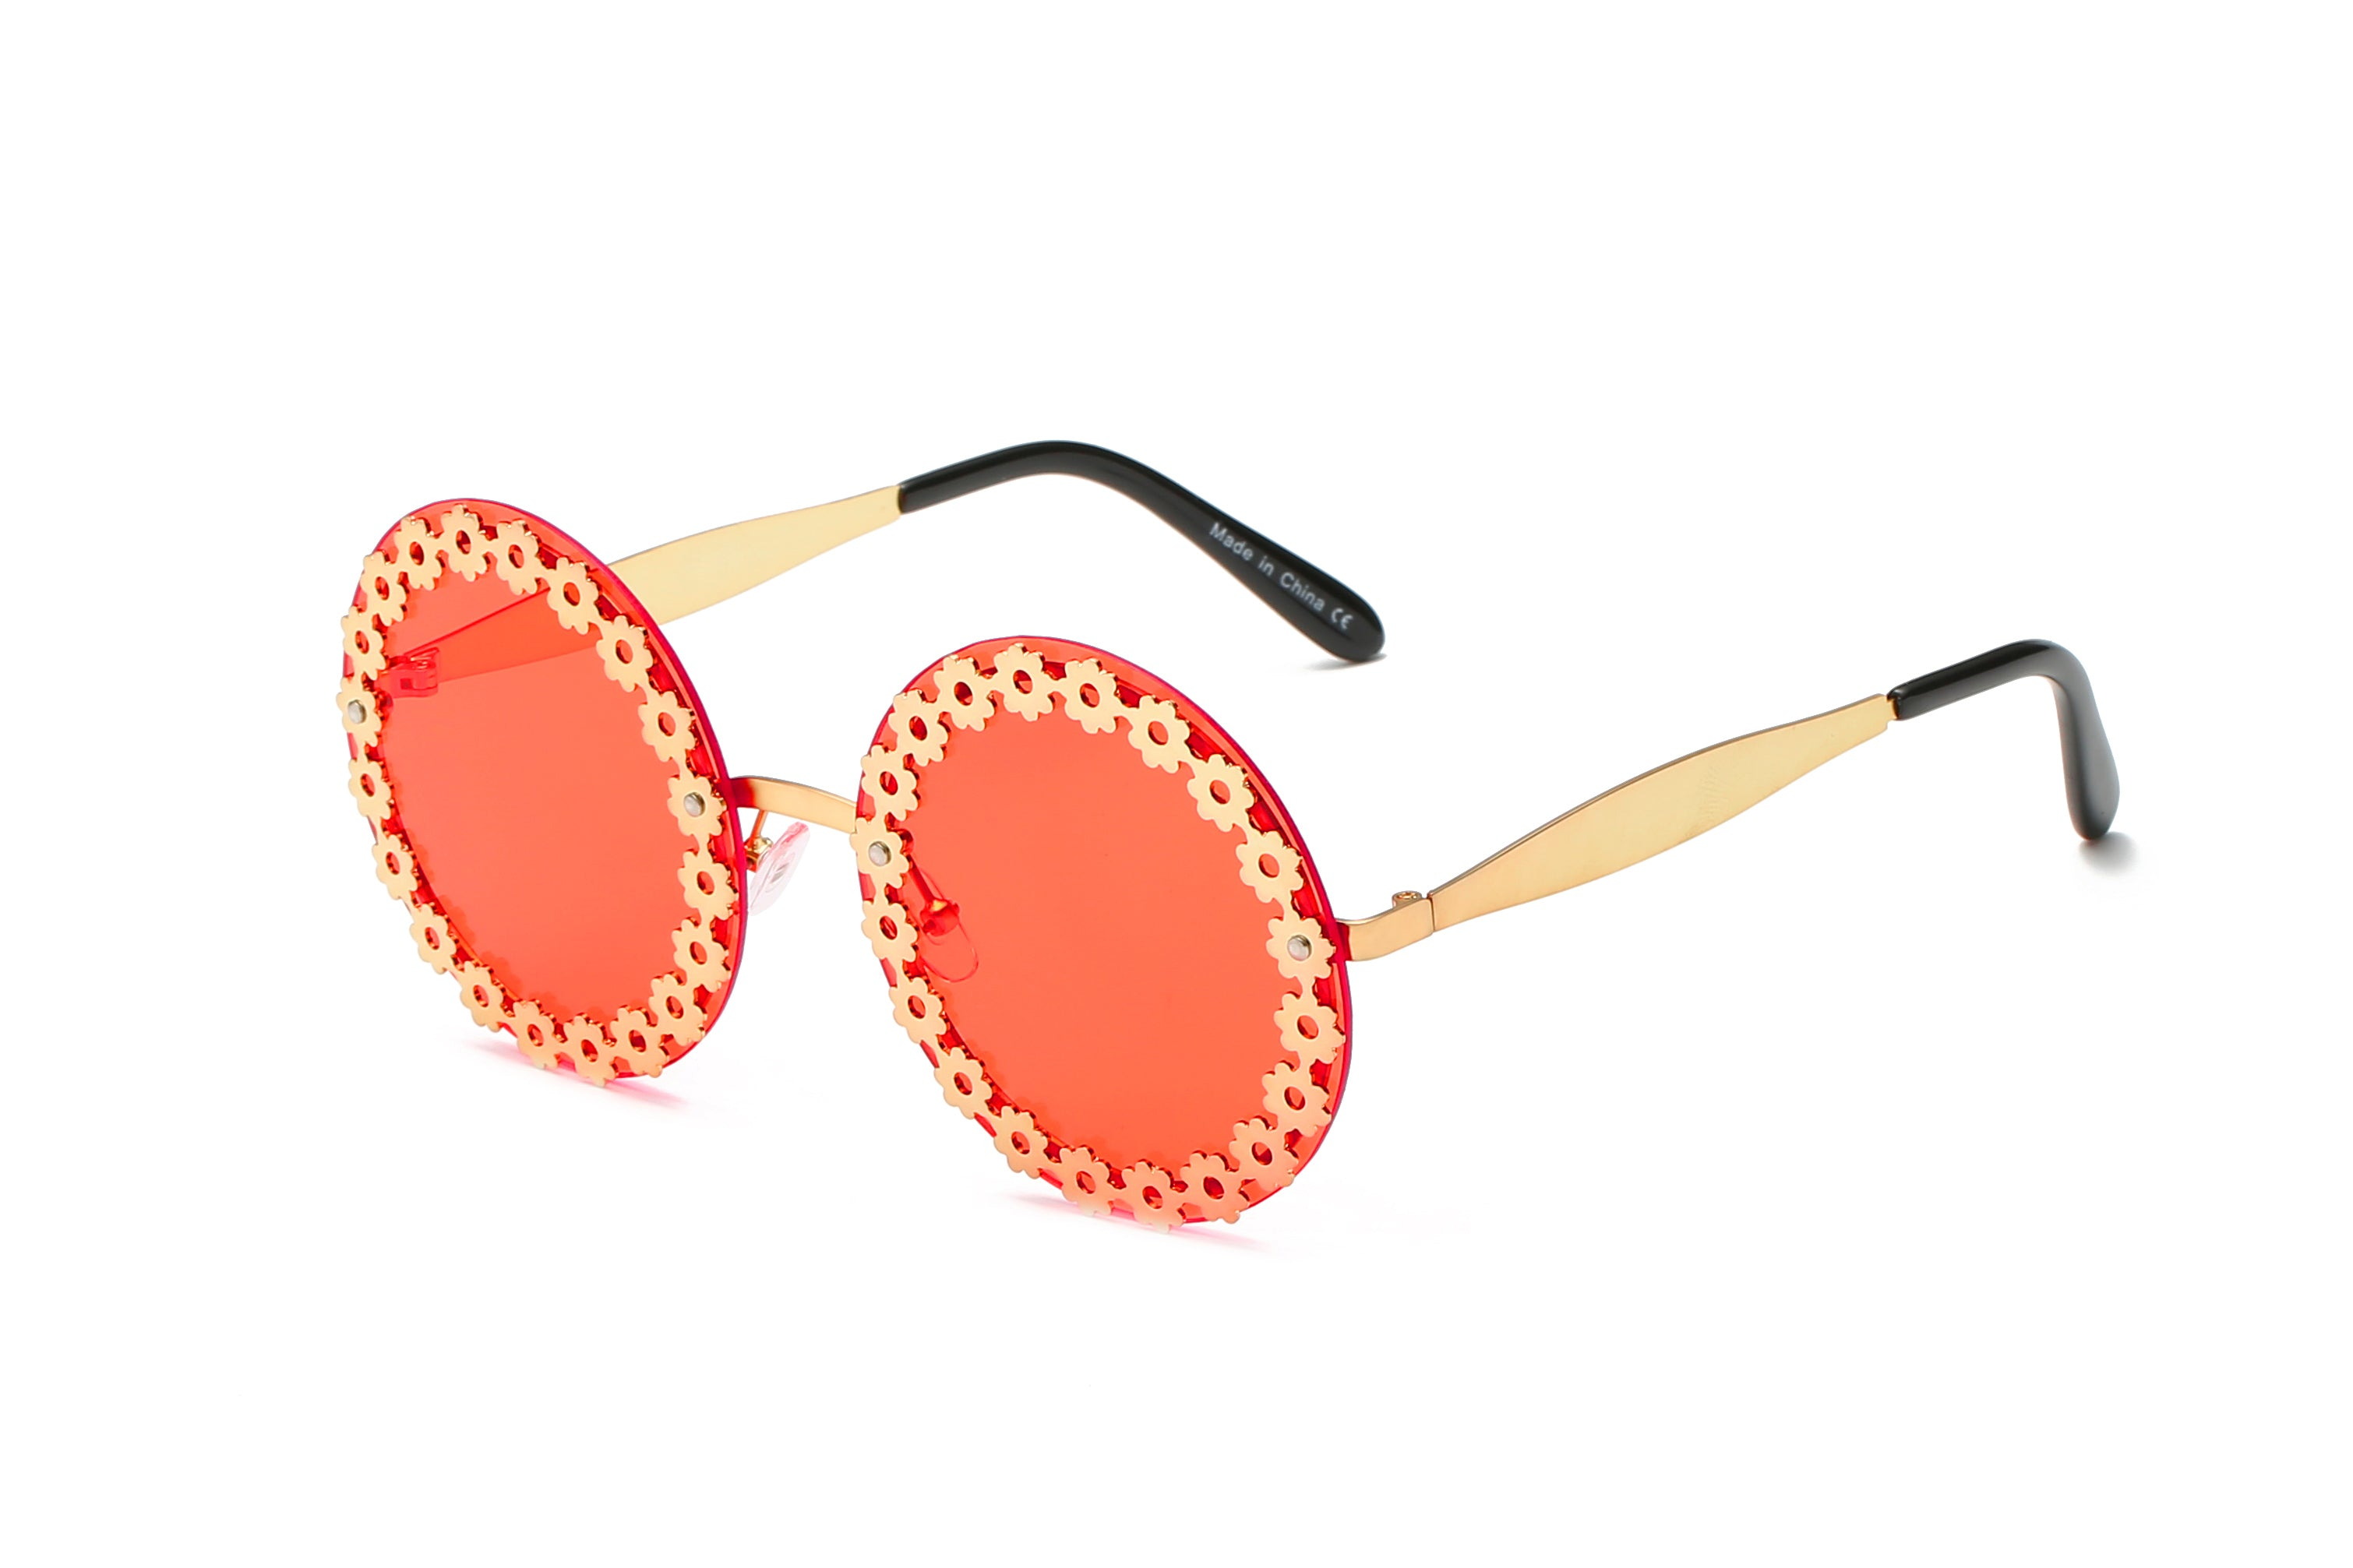 Women Retro Vintage Circle Round Mirrored UV Protection Oversized Fashion Sunglasses - Red